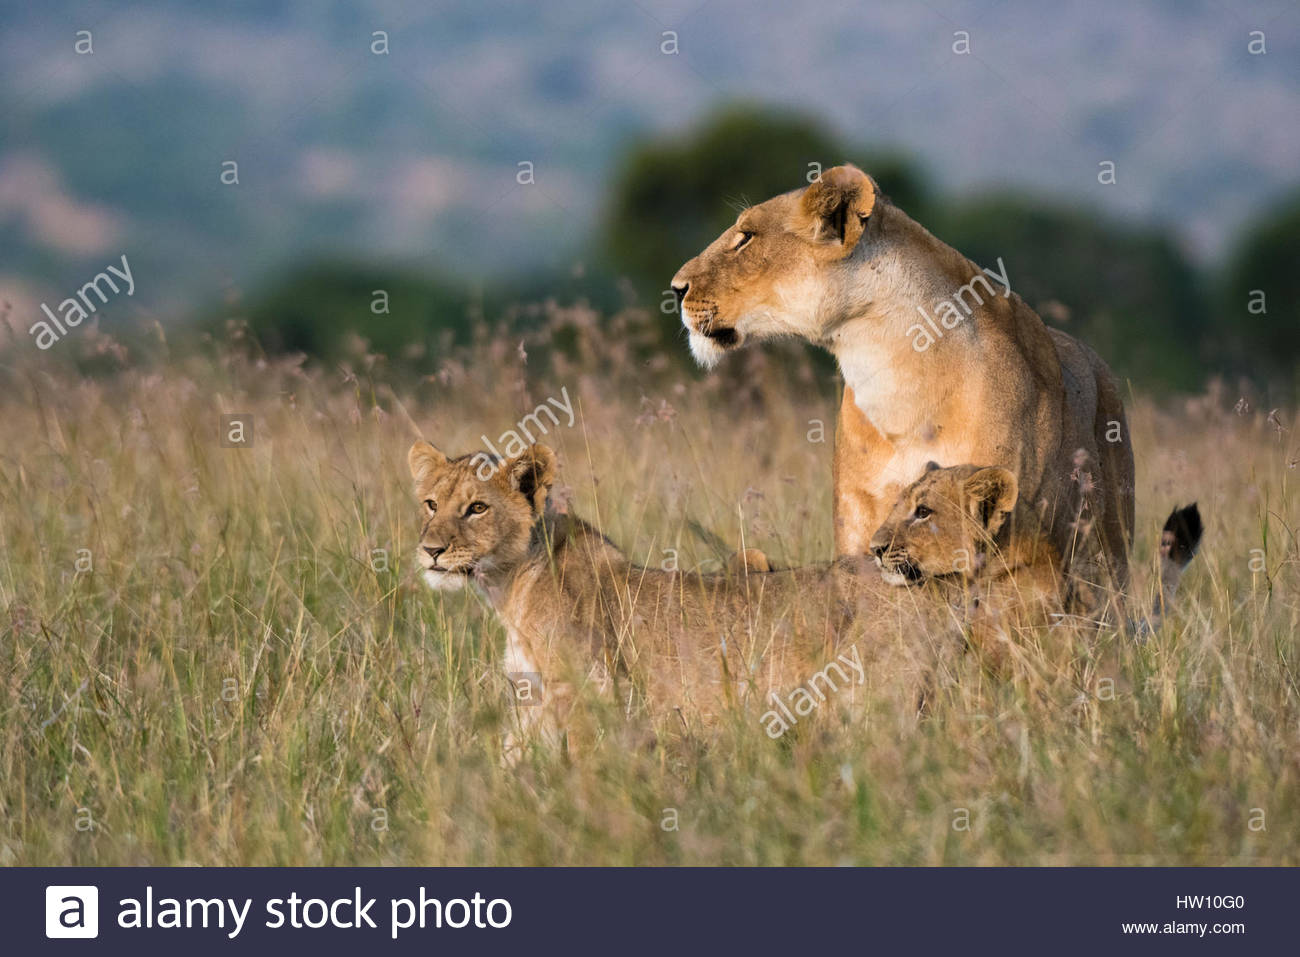 A lioness, Panthera leo, greeted by the her cubs upon her return, Masai Mara, Kenya. - Stock Image